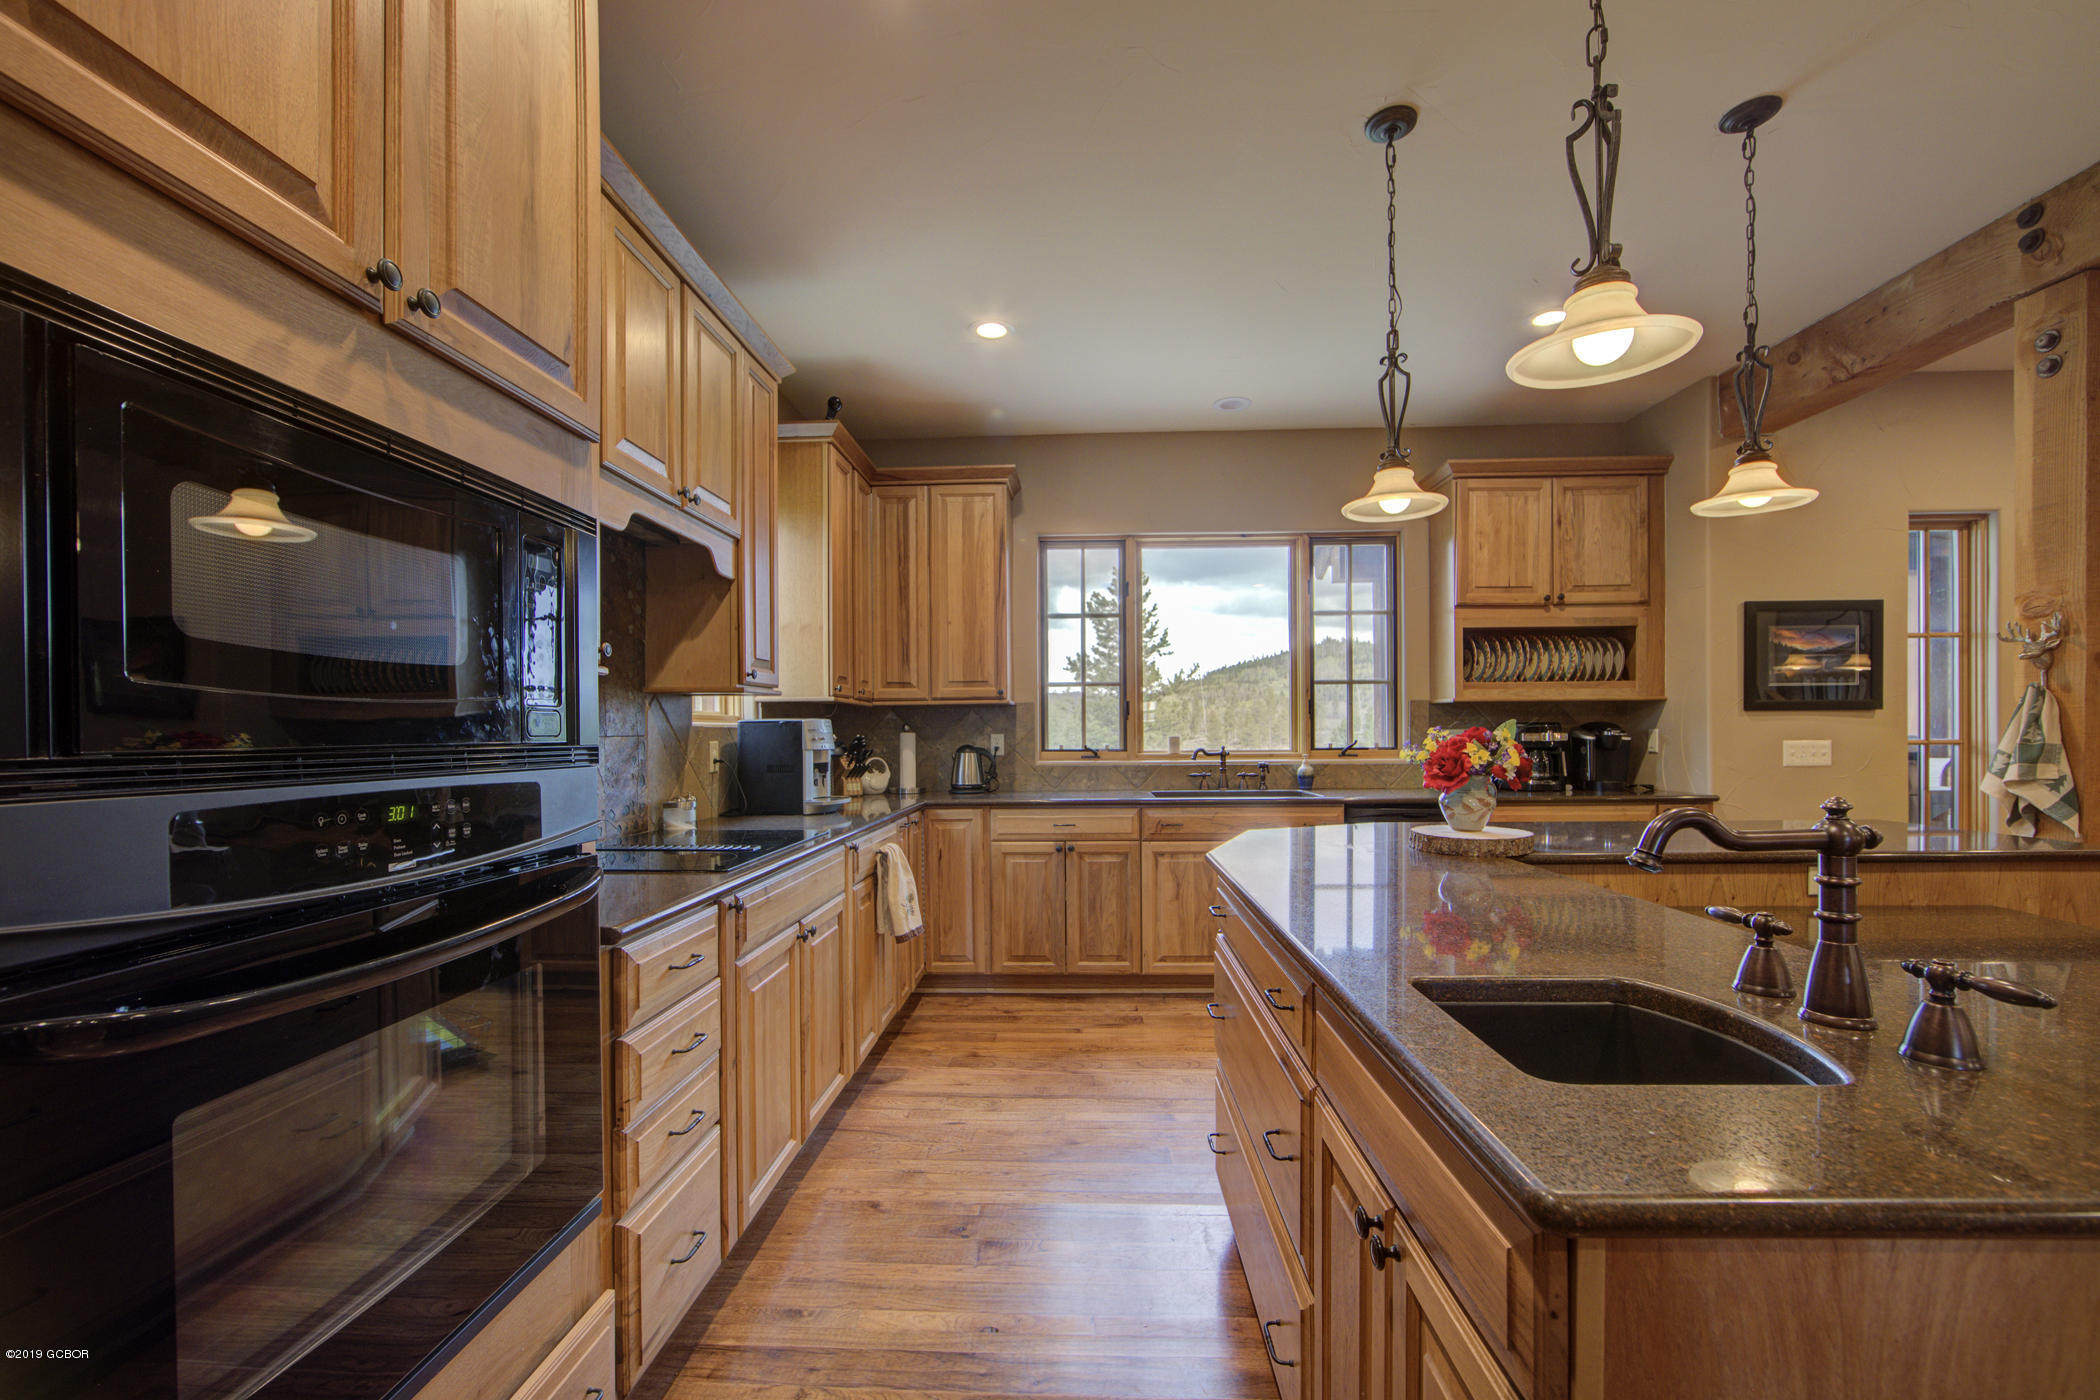 MLS# 19-704 - 27 - 612 County Rd 6237  #, Granby, CO 80446